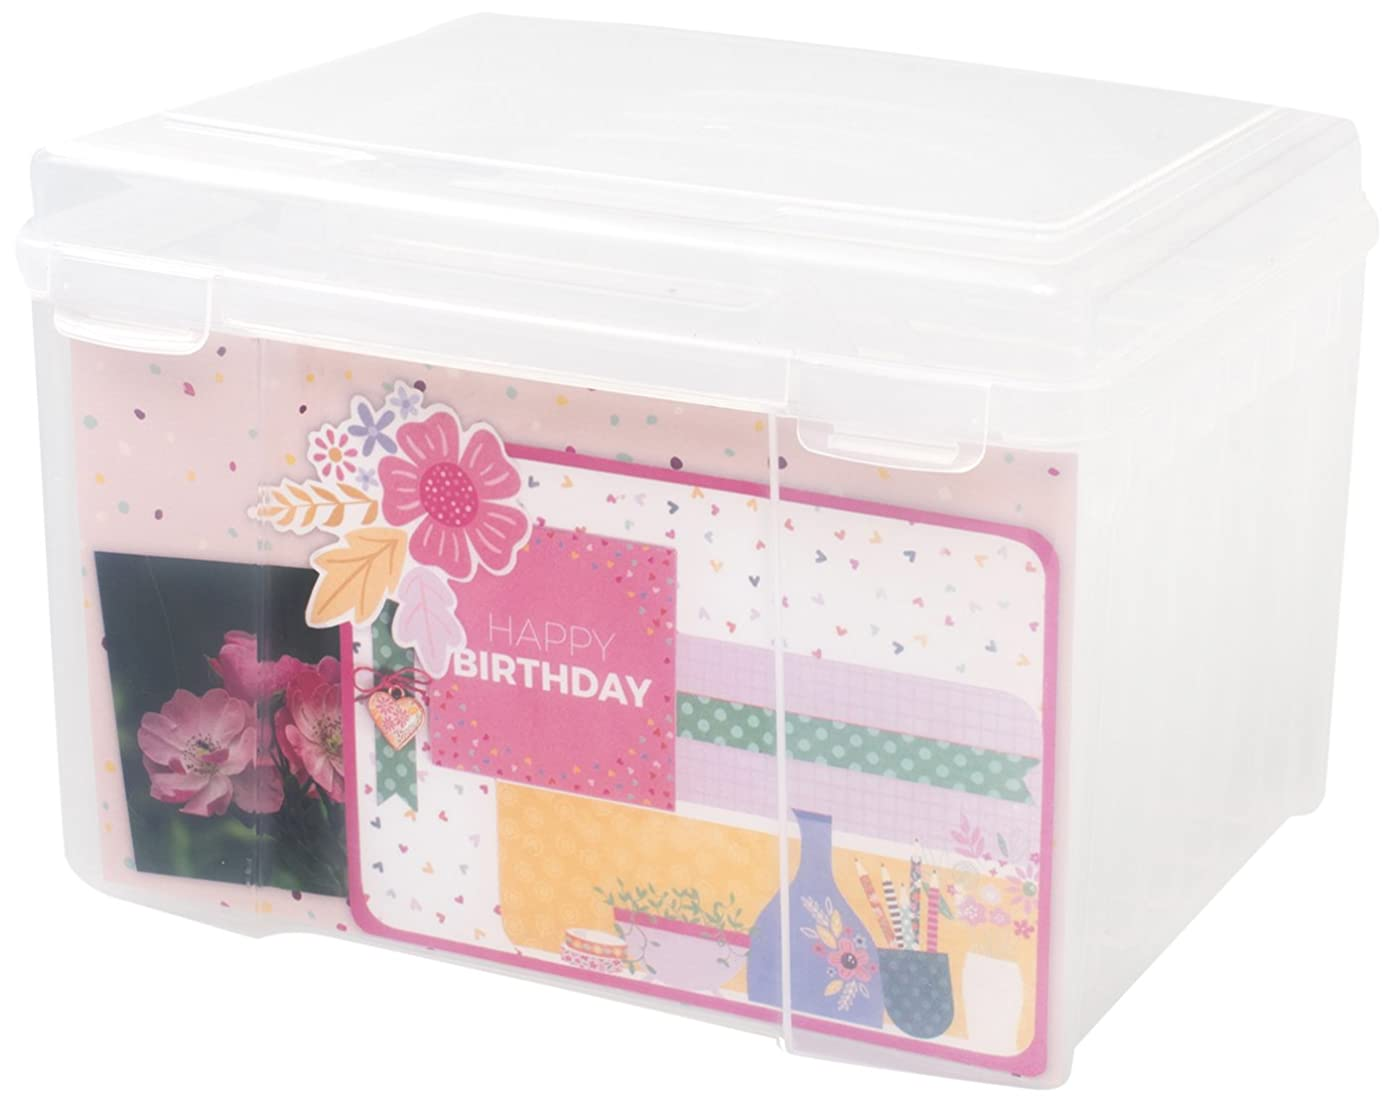 We R Memory Keepers 660270 11 x 9 x 8 File Organizer